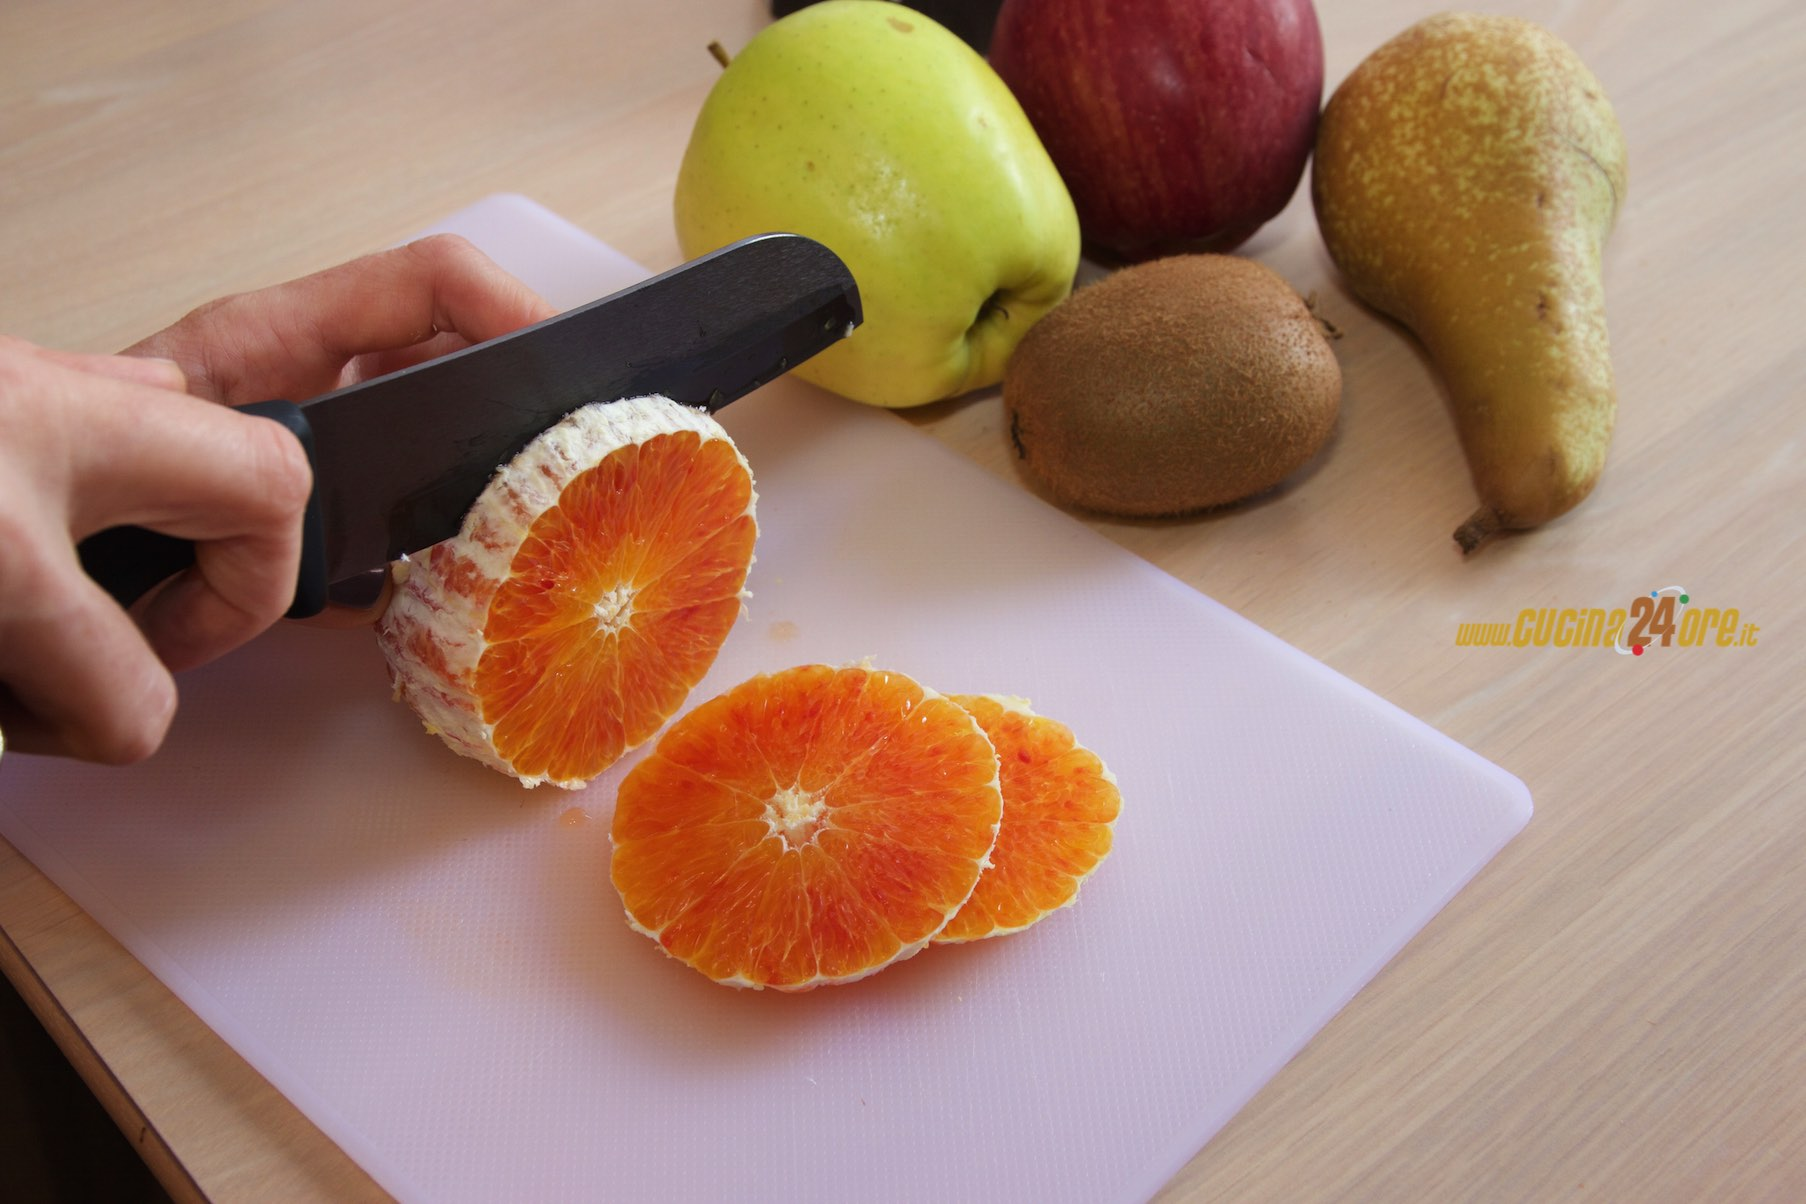 High Blood Sugar: Recommended and Not Recommended Foods